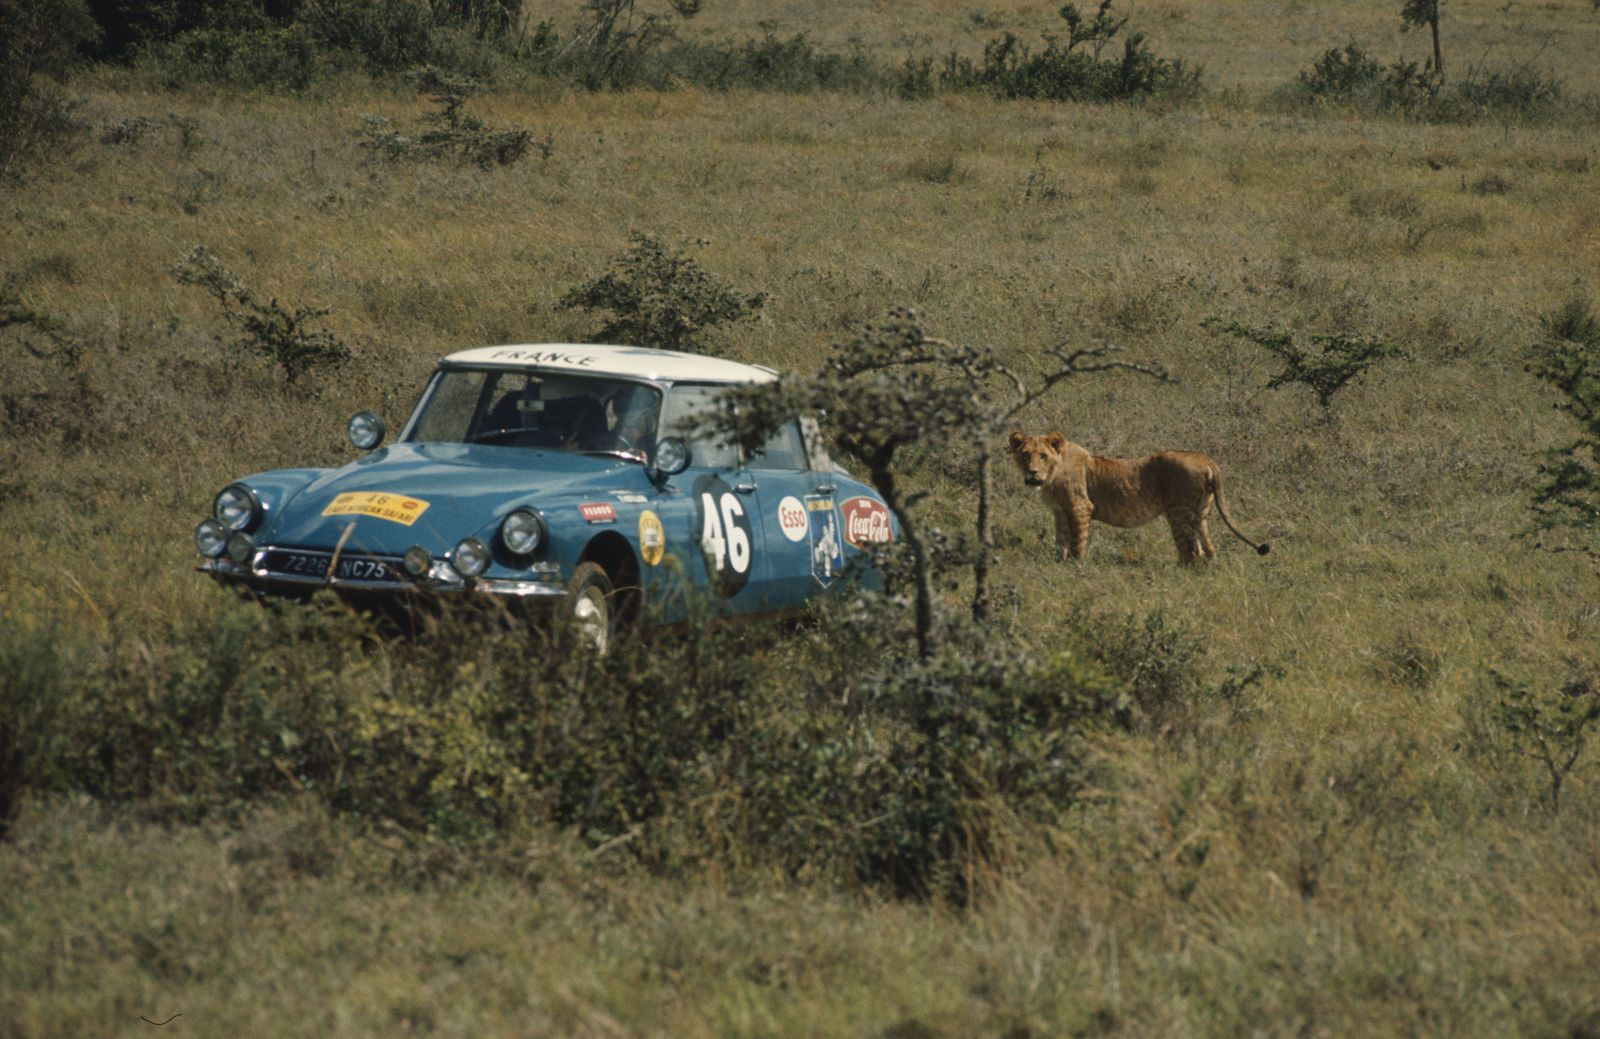 East African Safari 1965   CL 65 1 19 copyright DREUX   AZOULAY  SAUVIN   MATEL  .jpg